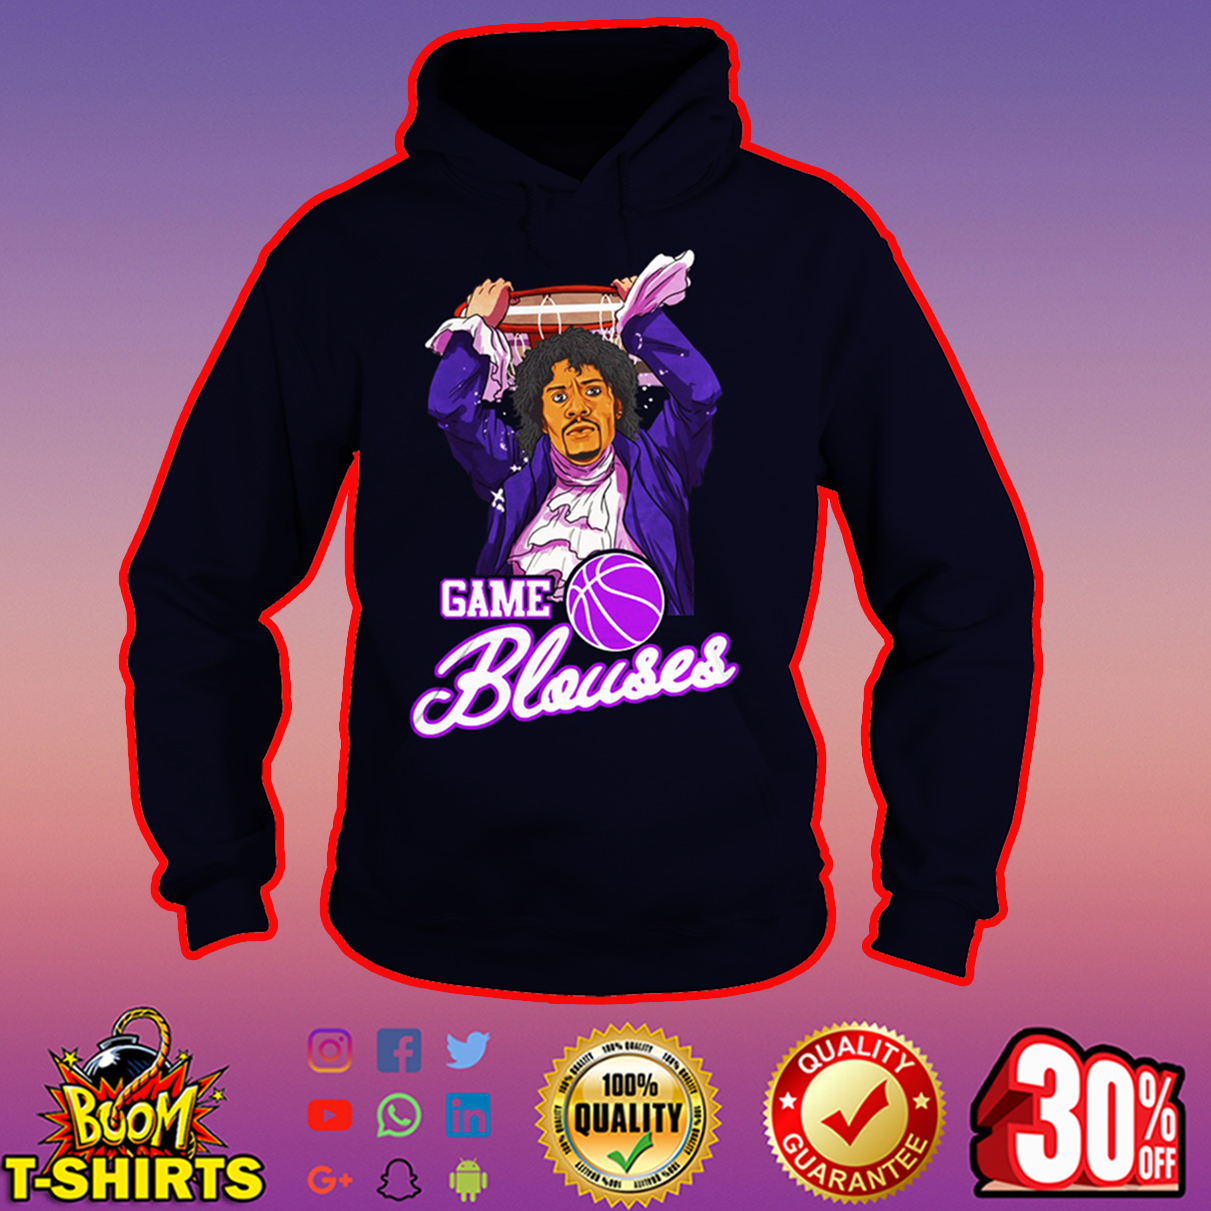 Game Blouses Chappelle's Show Charlie Murphy hoodie